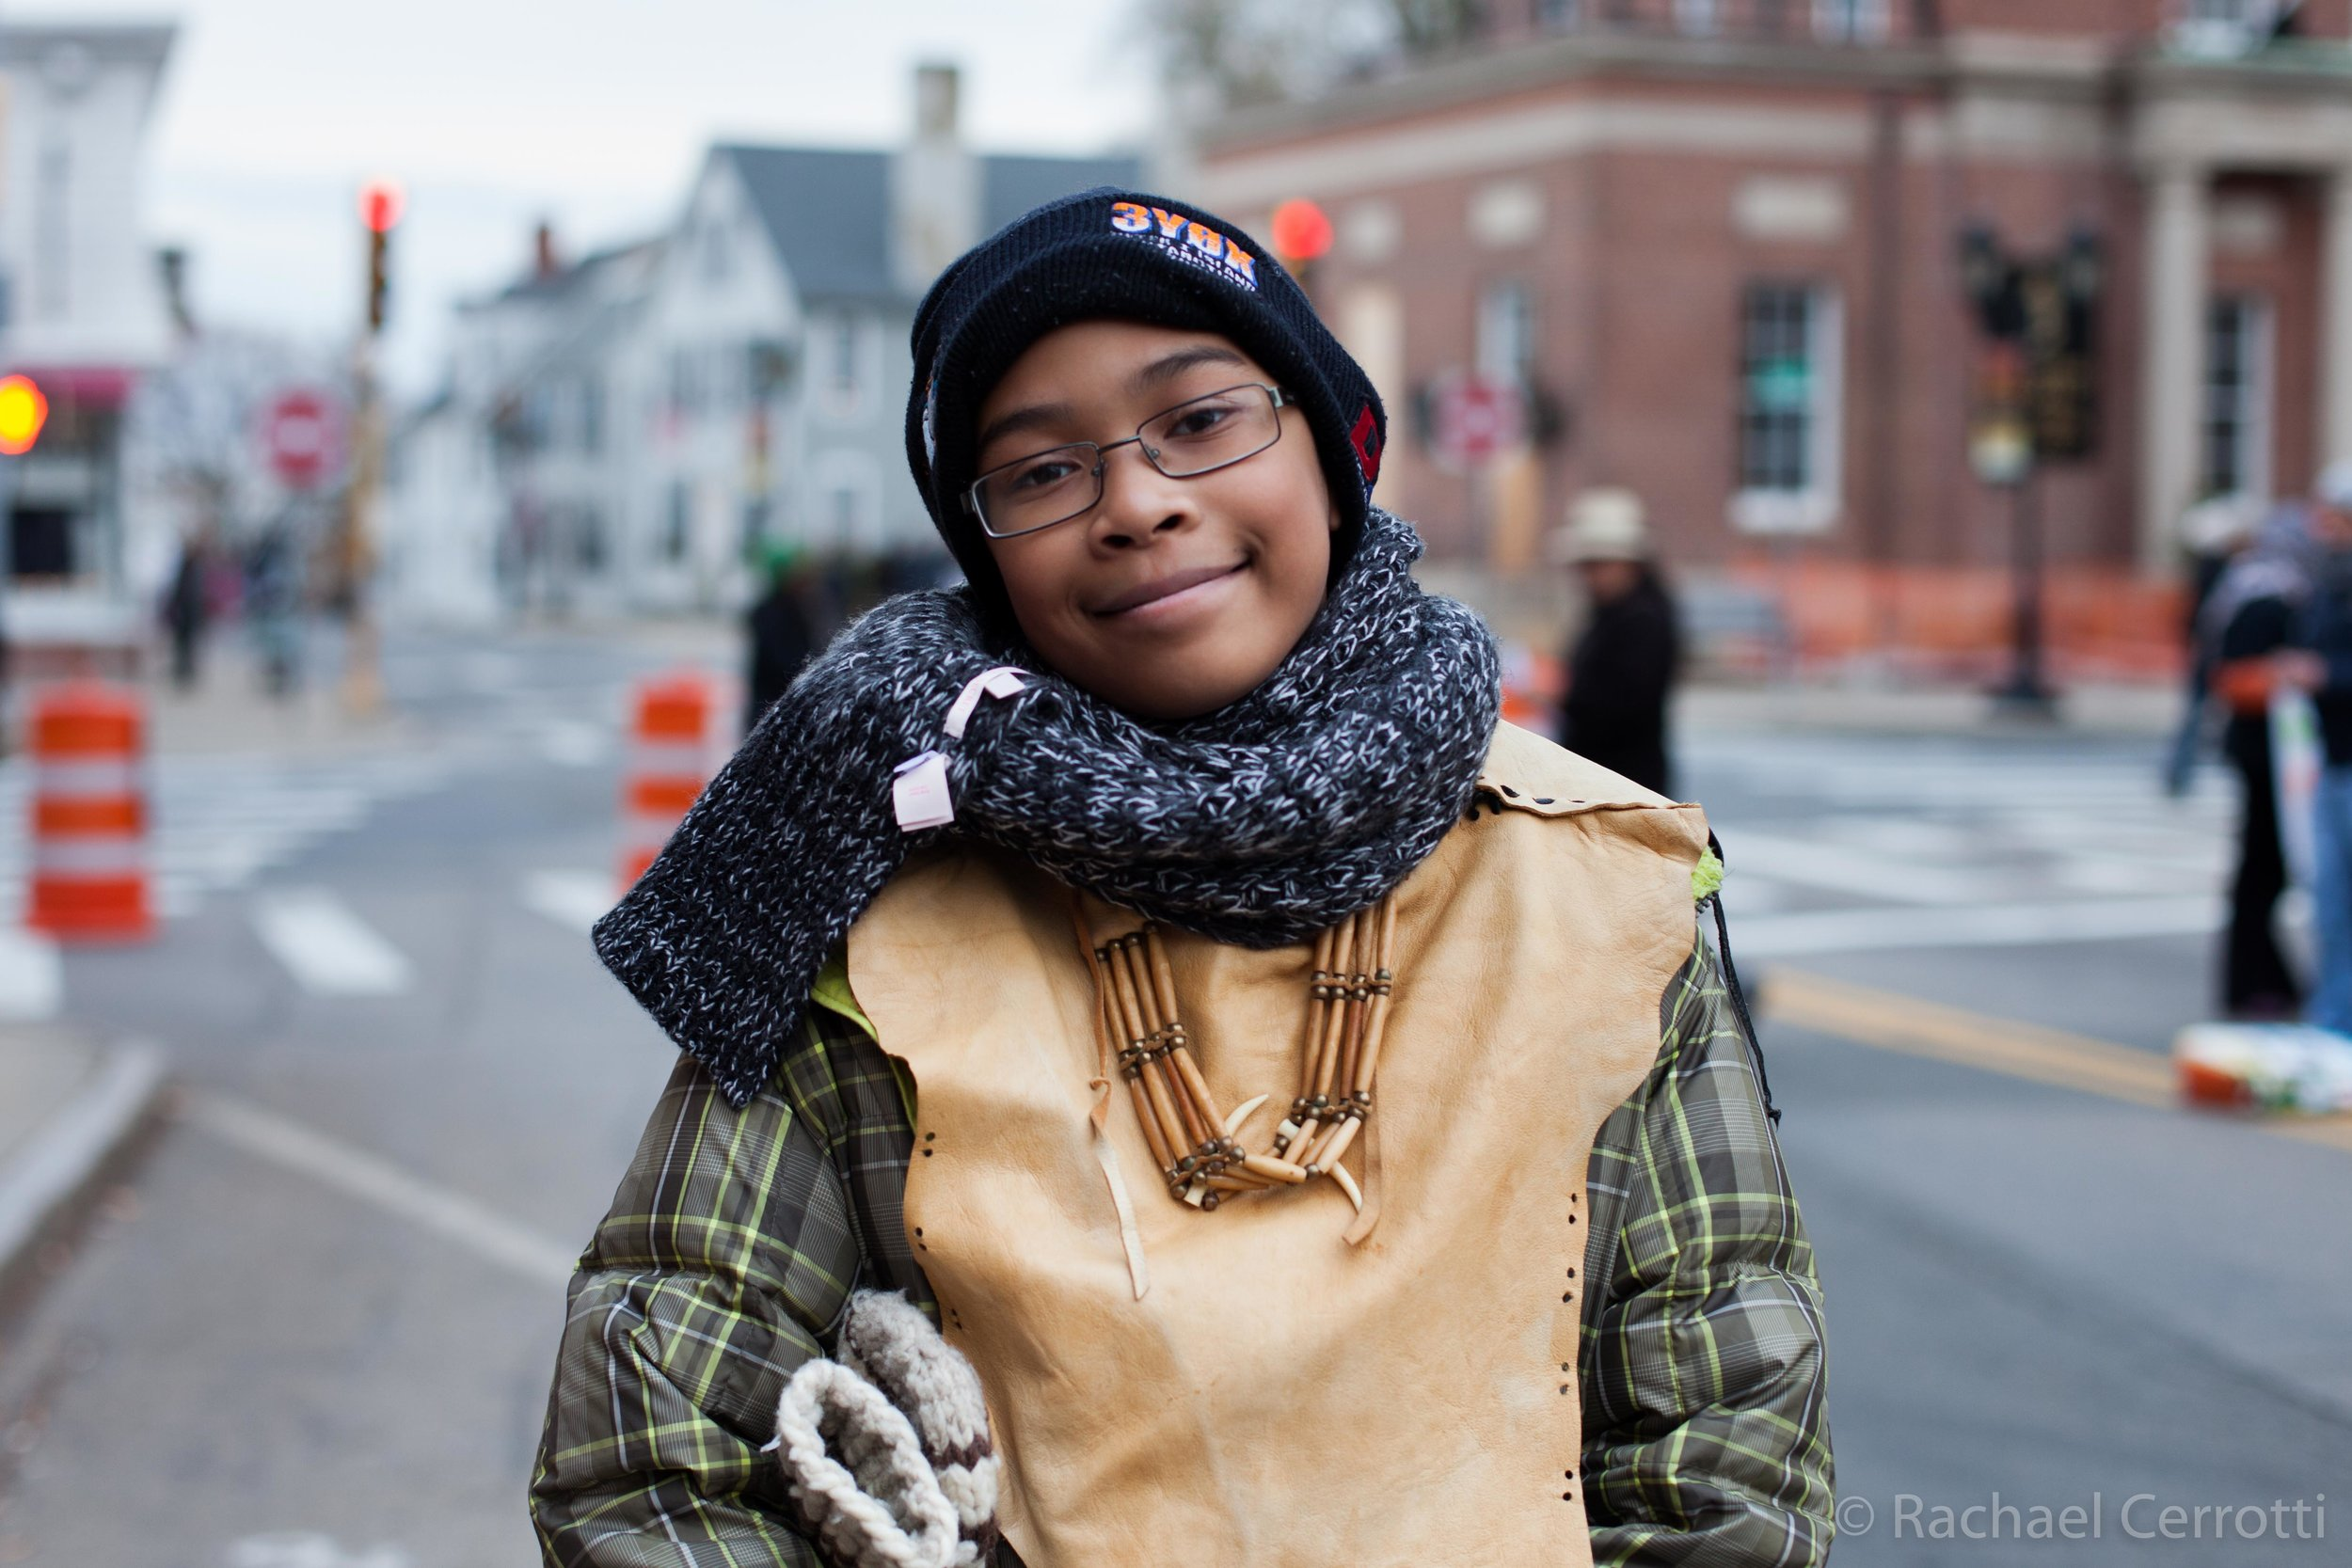 Herbie Waters IIII,13, comes from the Wampanoag Nation. He was born in Rhode Island and now lives in New York